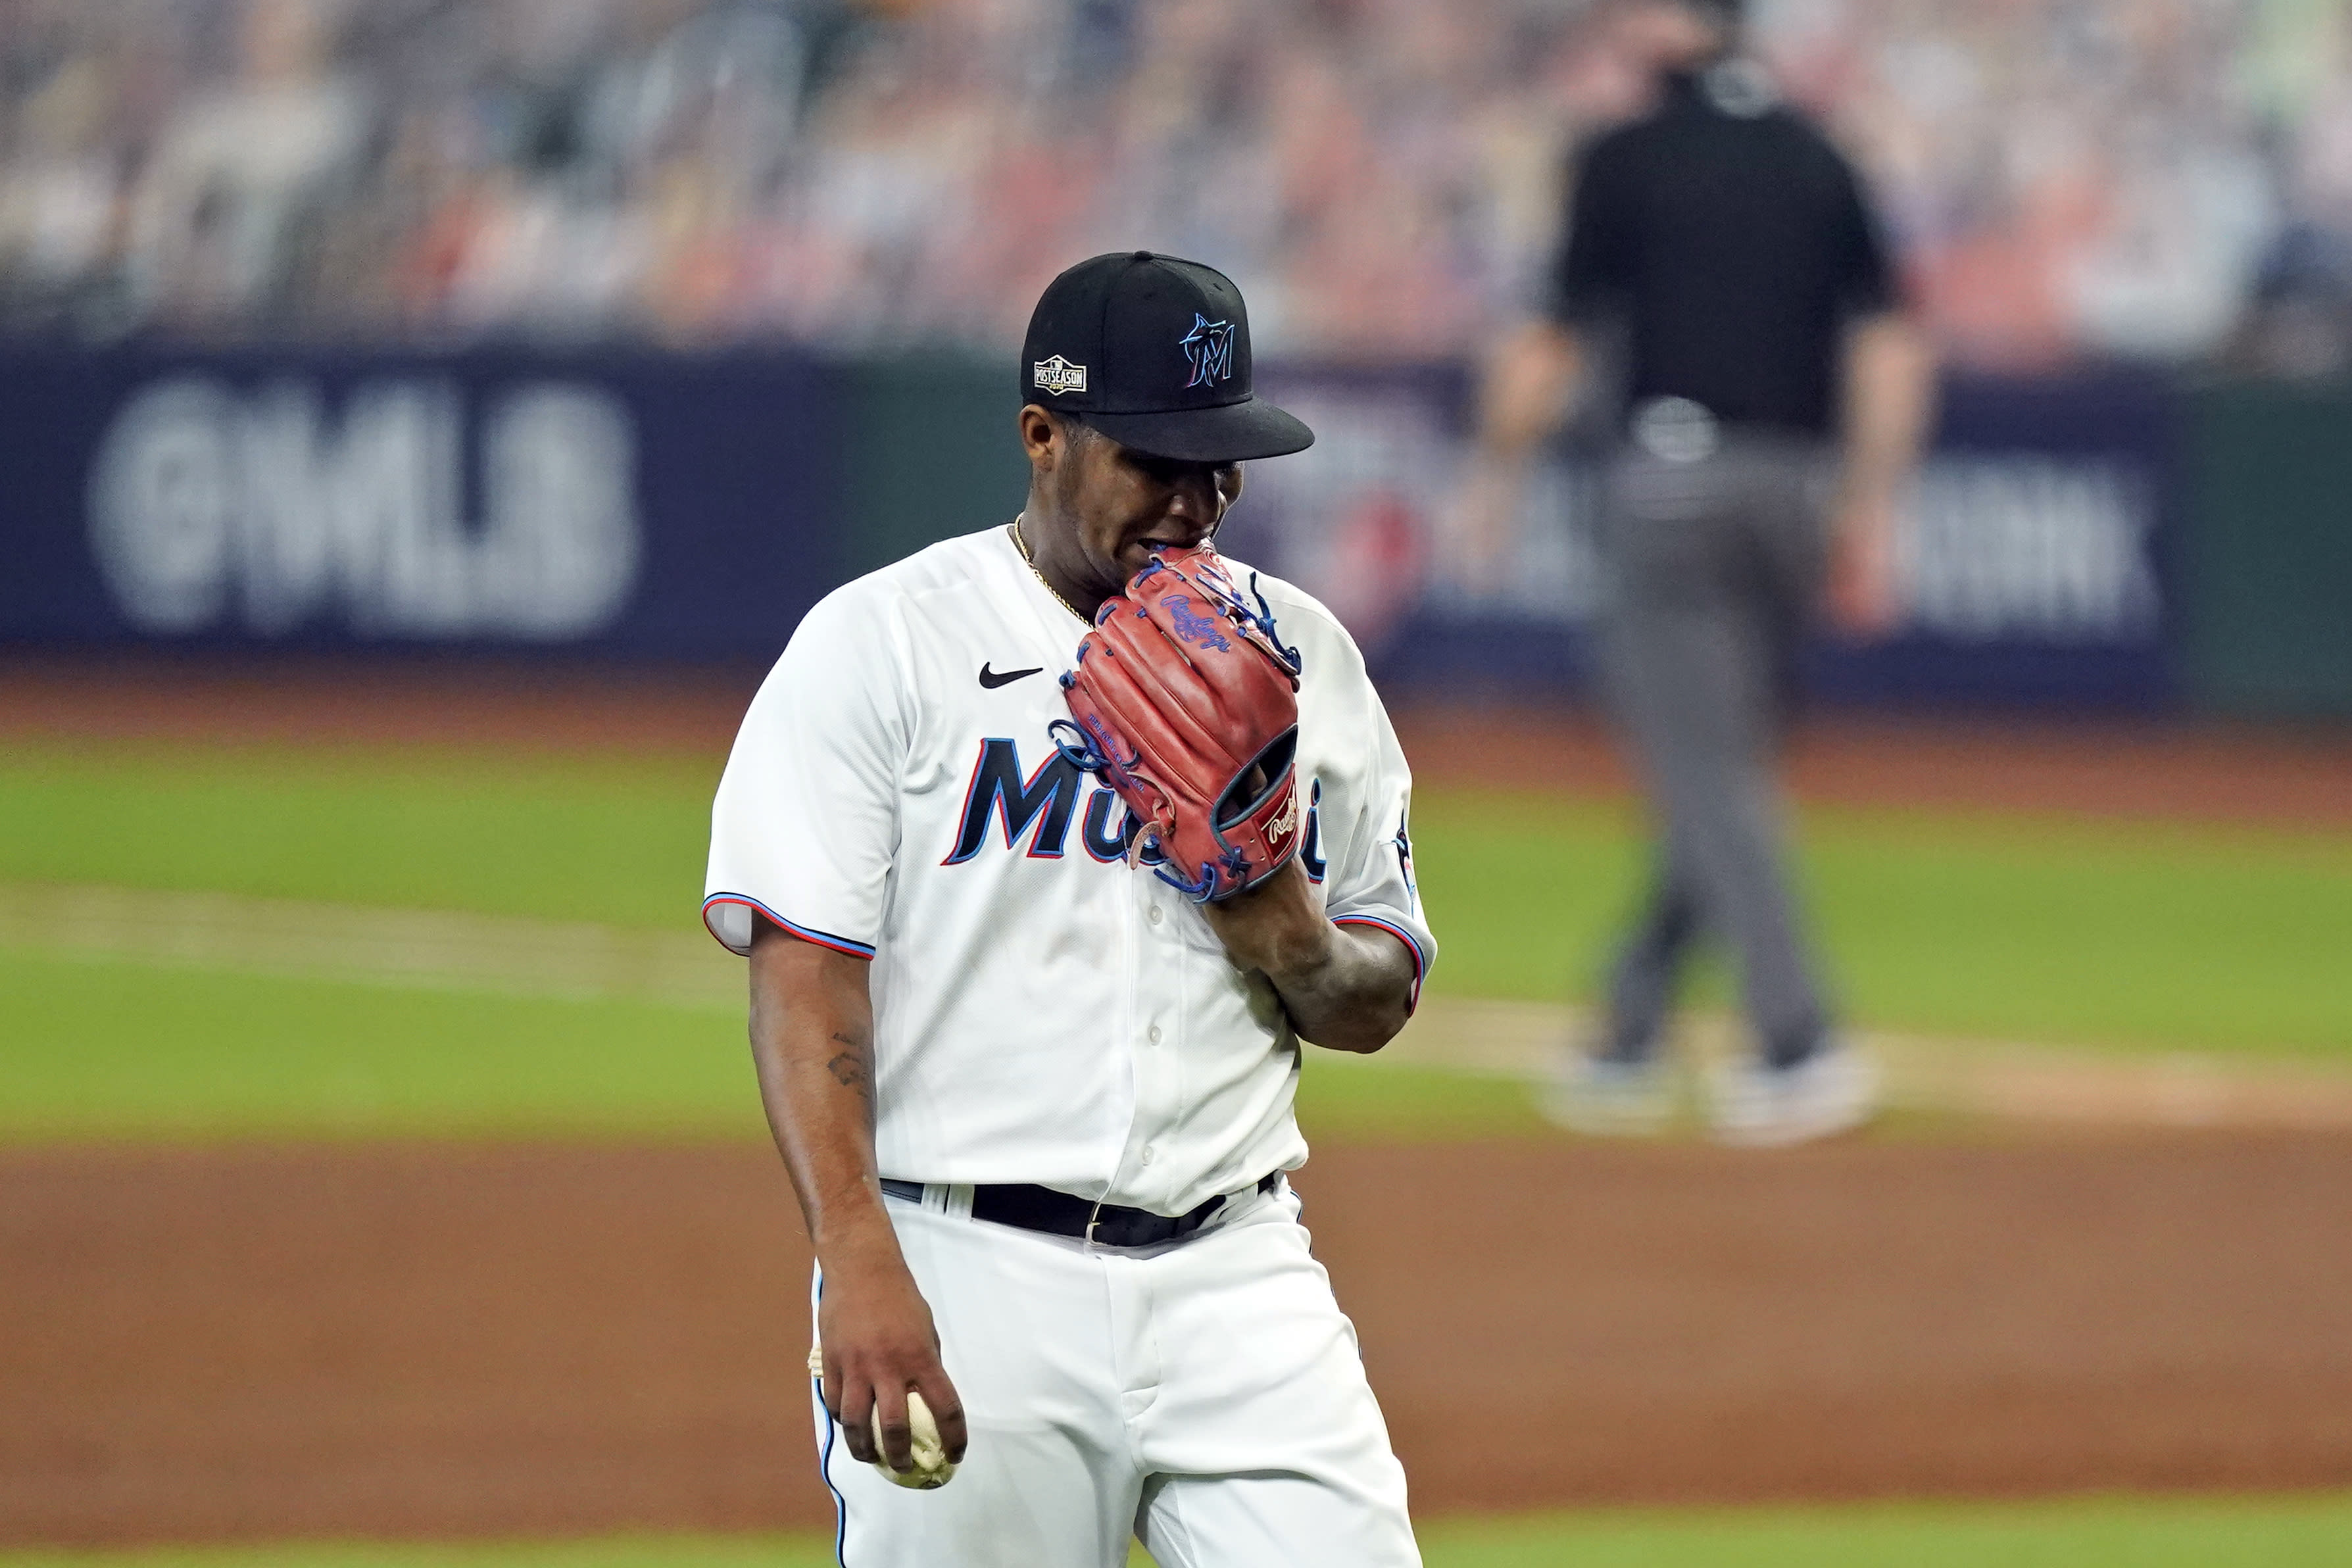 Miami Marlins starting pitcher Sixto Sanchez bites his glove as he walks off they field after the final out in the third inning in Game 3 of a baseball National League Division Series against the Atlanta Braves, Thursday, Oct. 8, 2020, in Houston. (AP Photo/David J. Phillip)